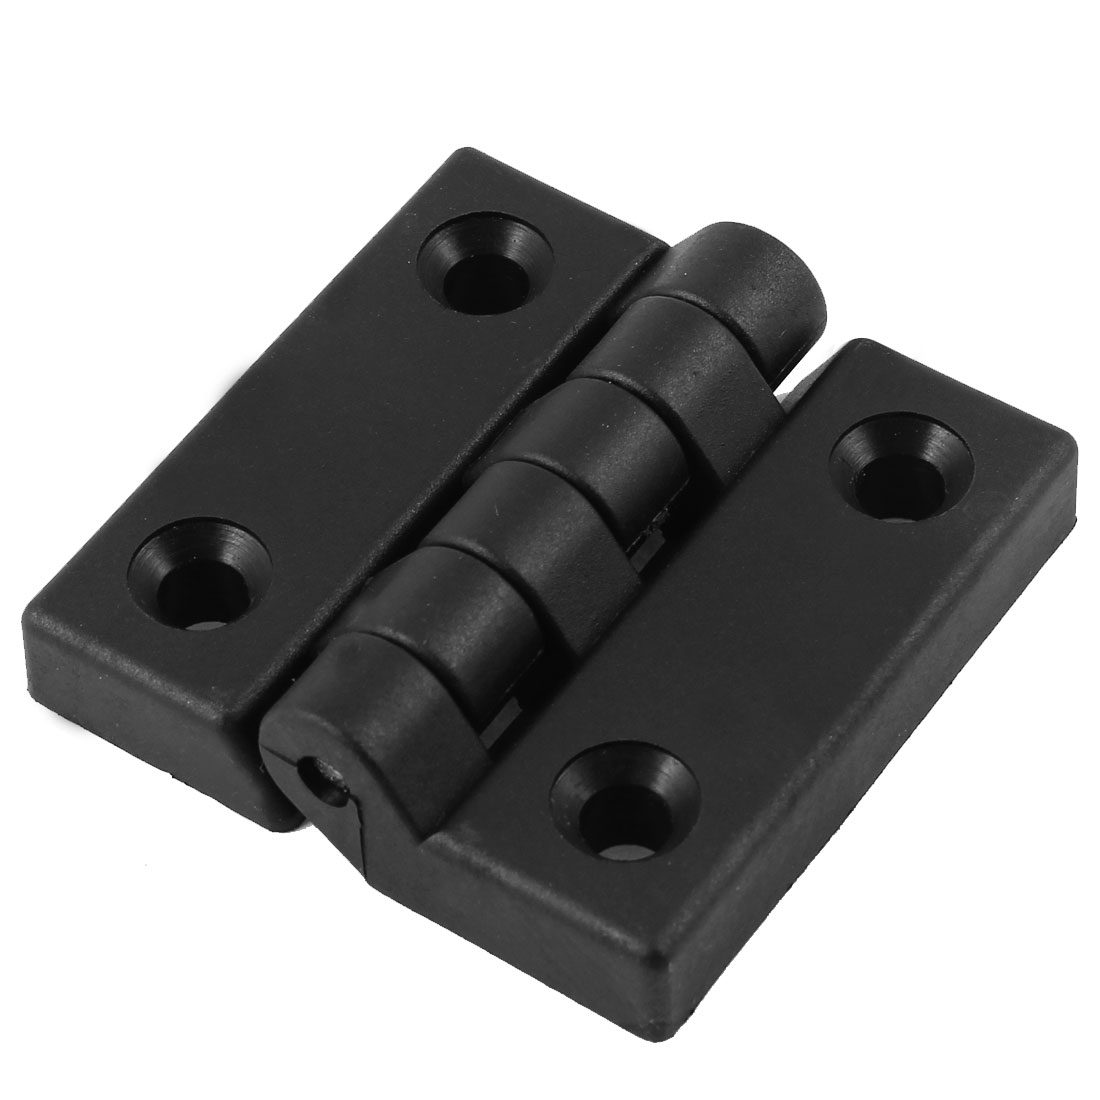 65mm x 65mm Cabinet Door Screw Mount Butt Ball Bearing Plastic Hinge